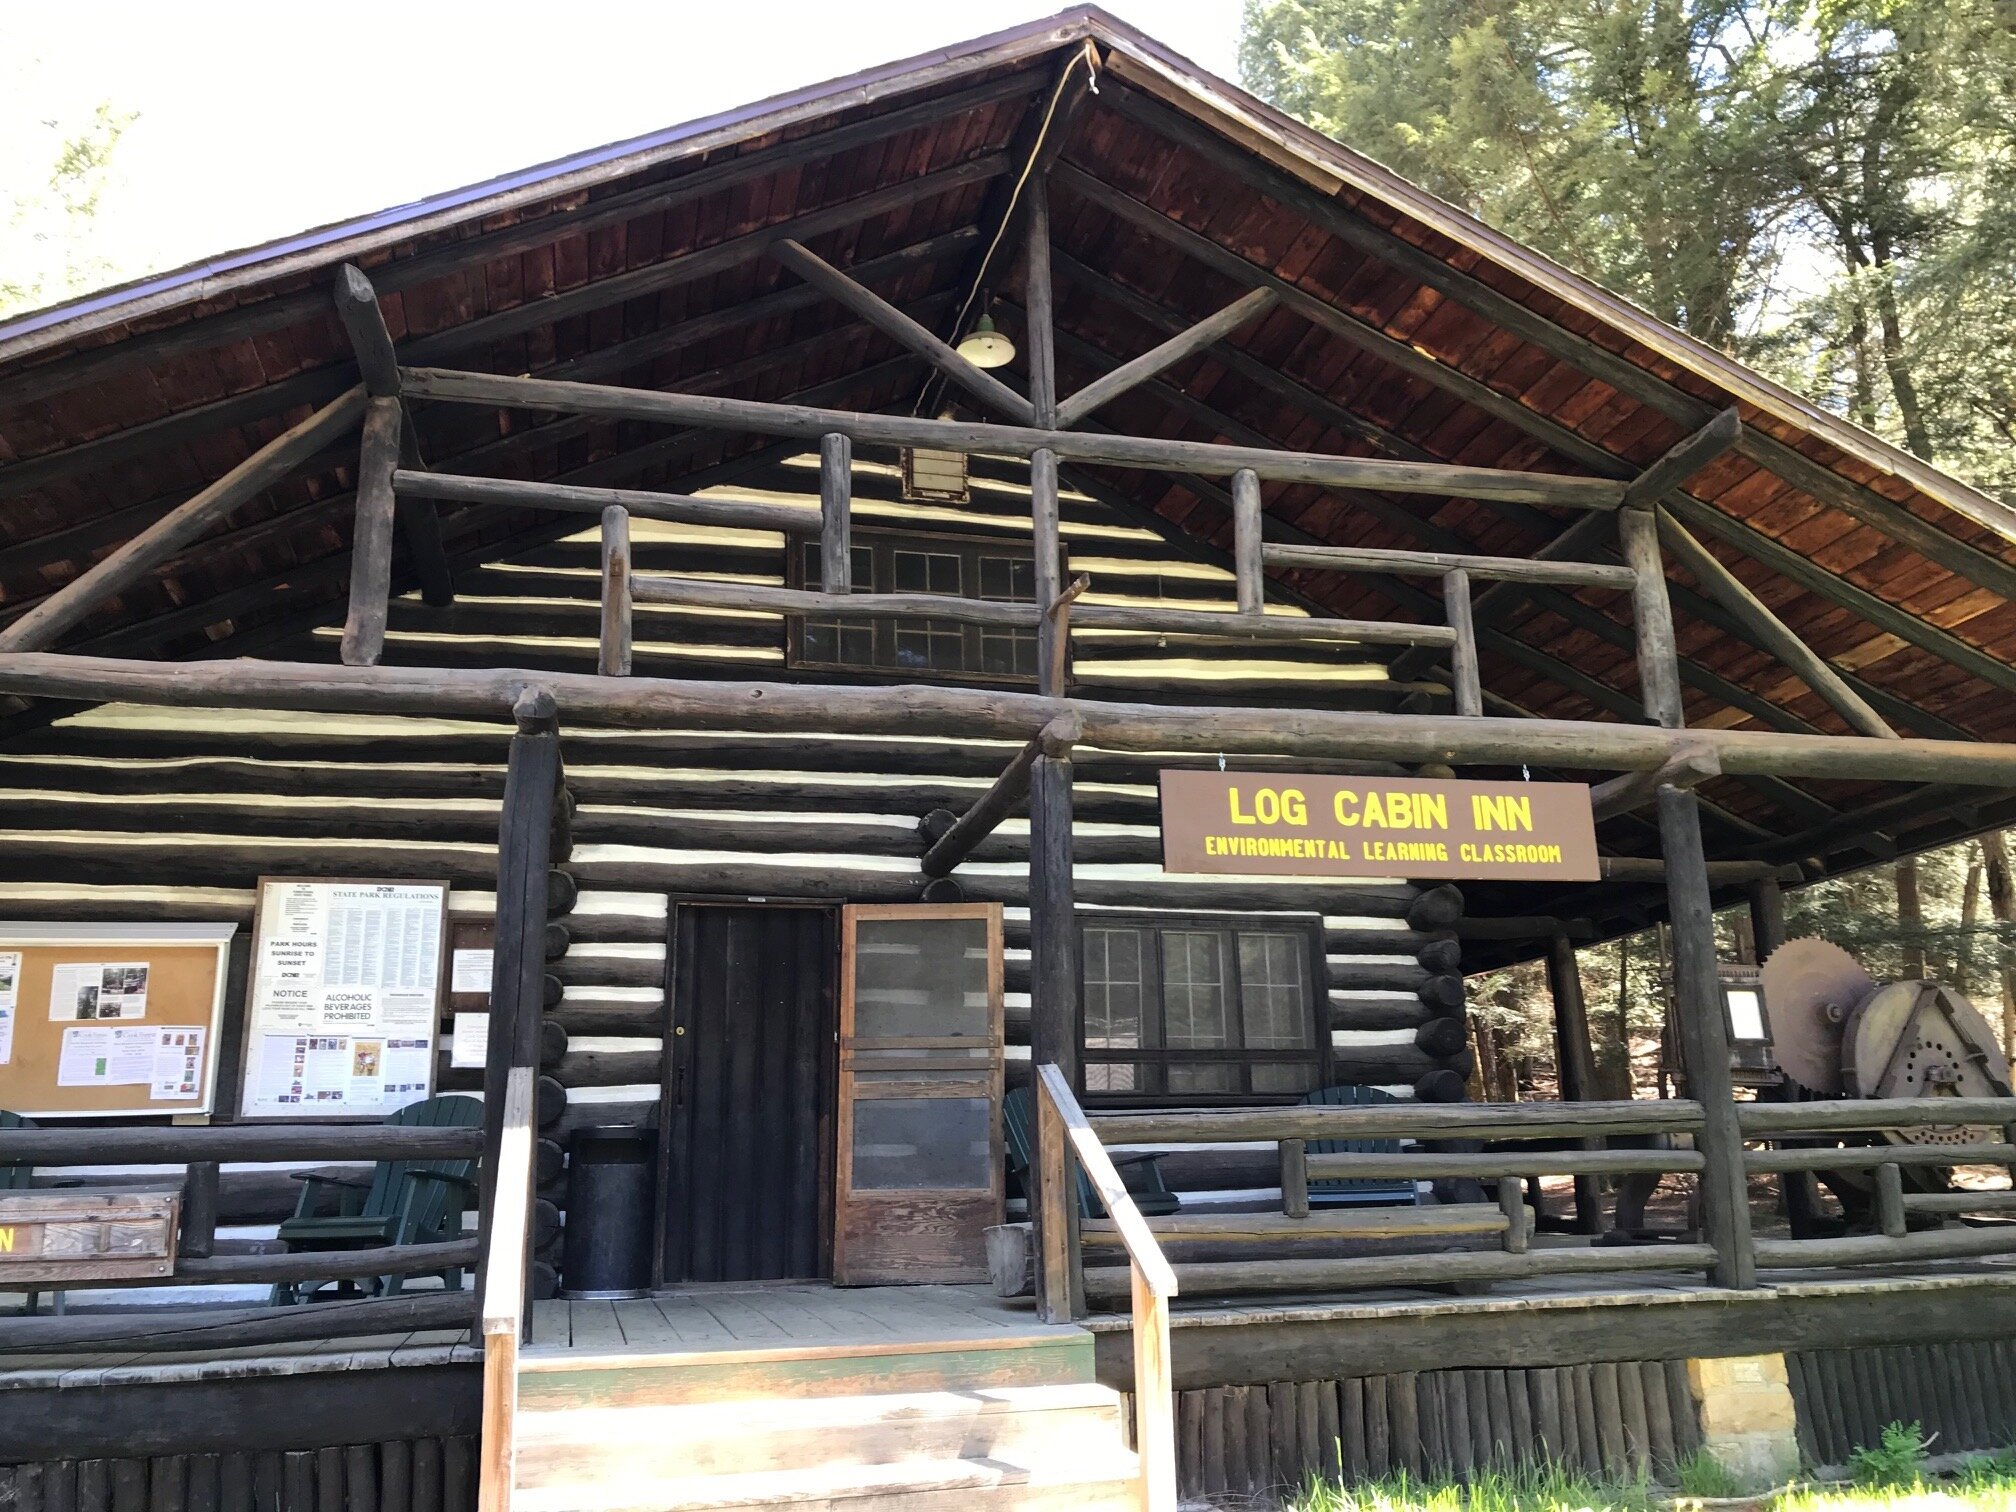 This log cabin is at the start of Longfellow trail, inside you can learn about logging in the area and how this land was preserved for us to enjoy.